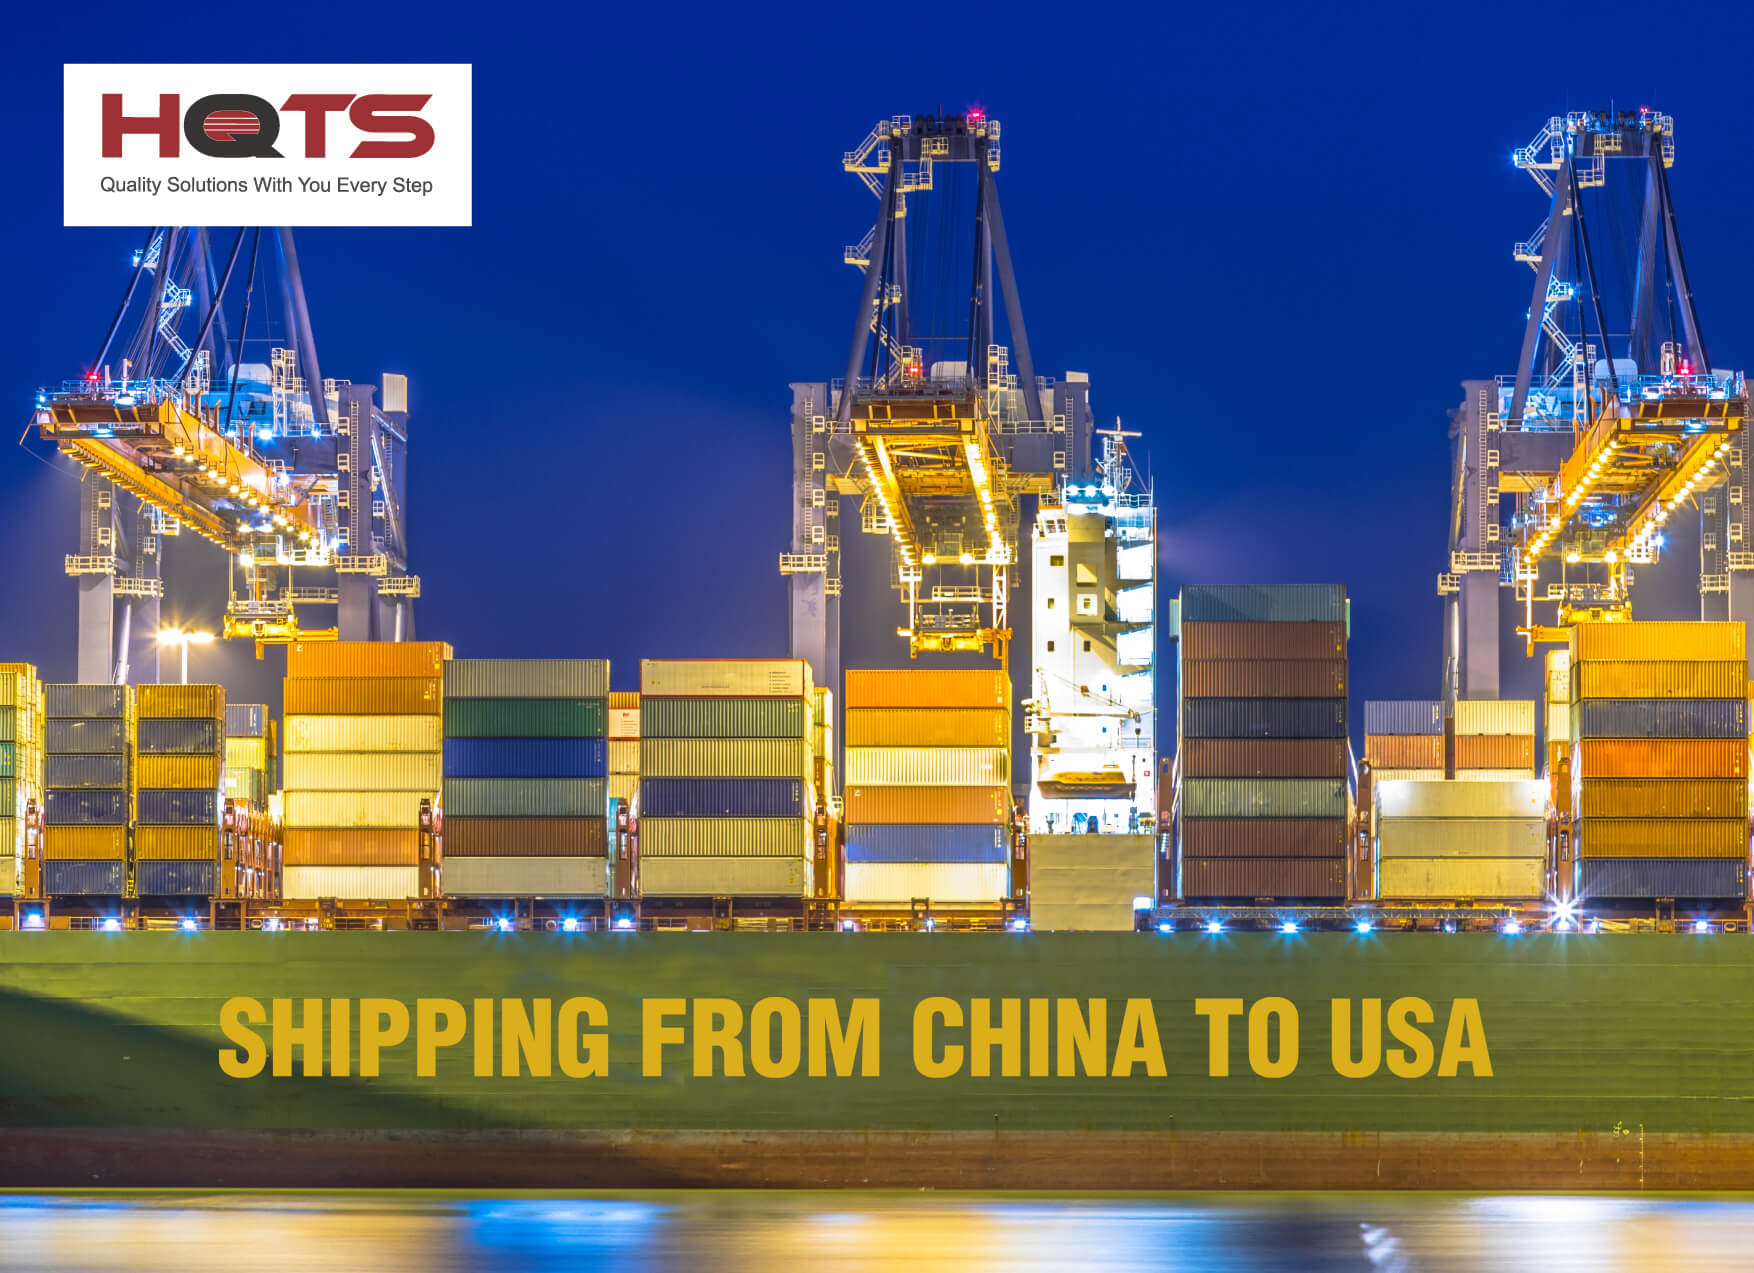 ship to Usa from Chinna